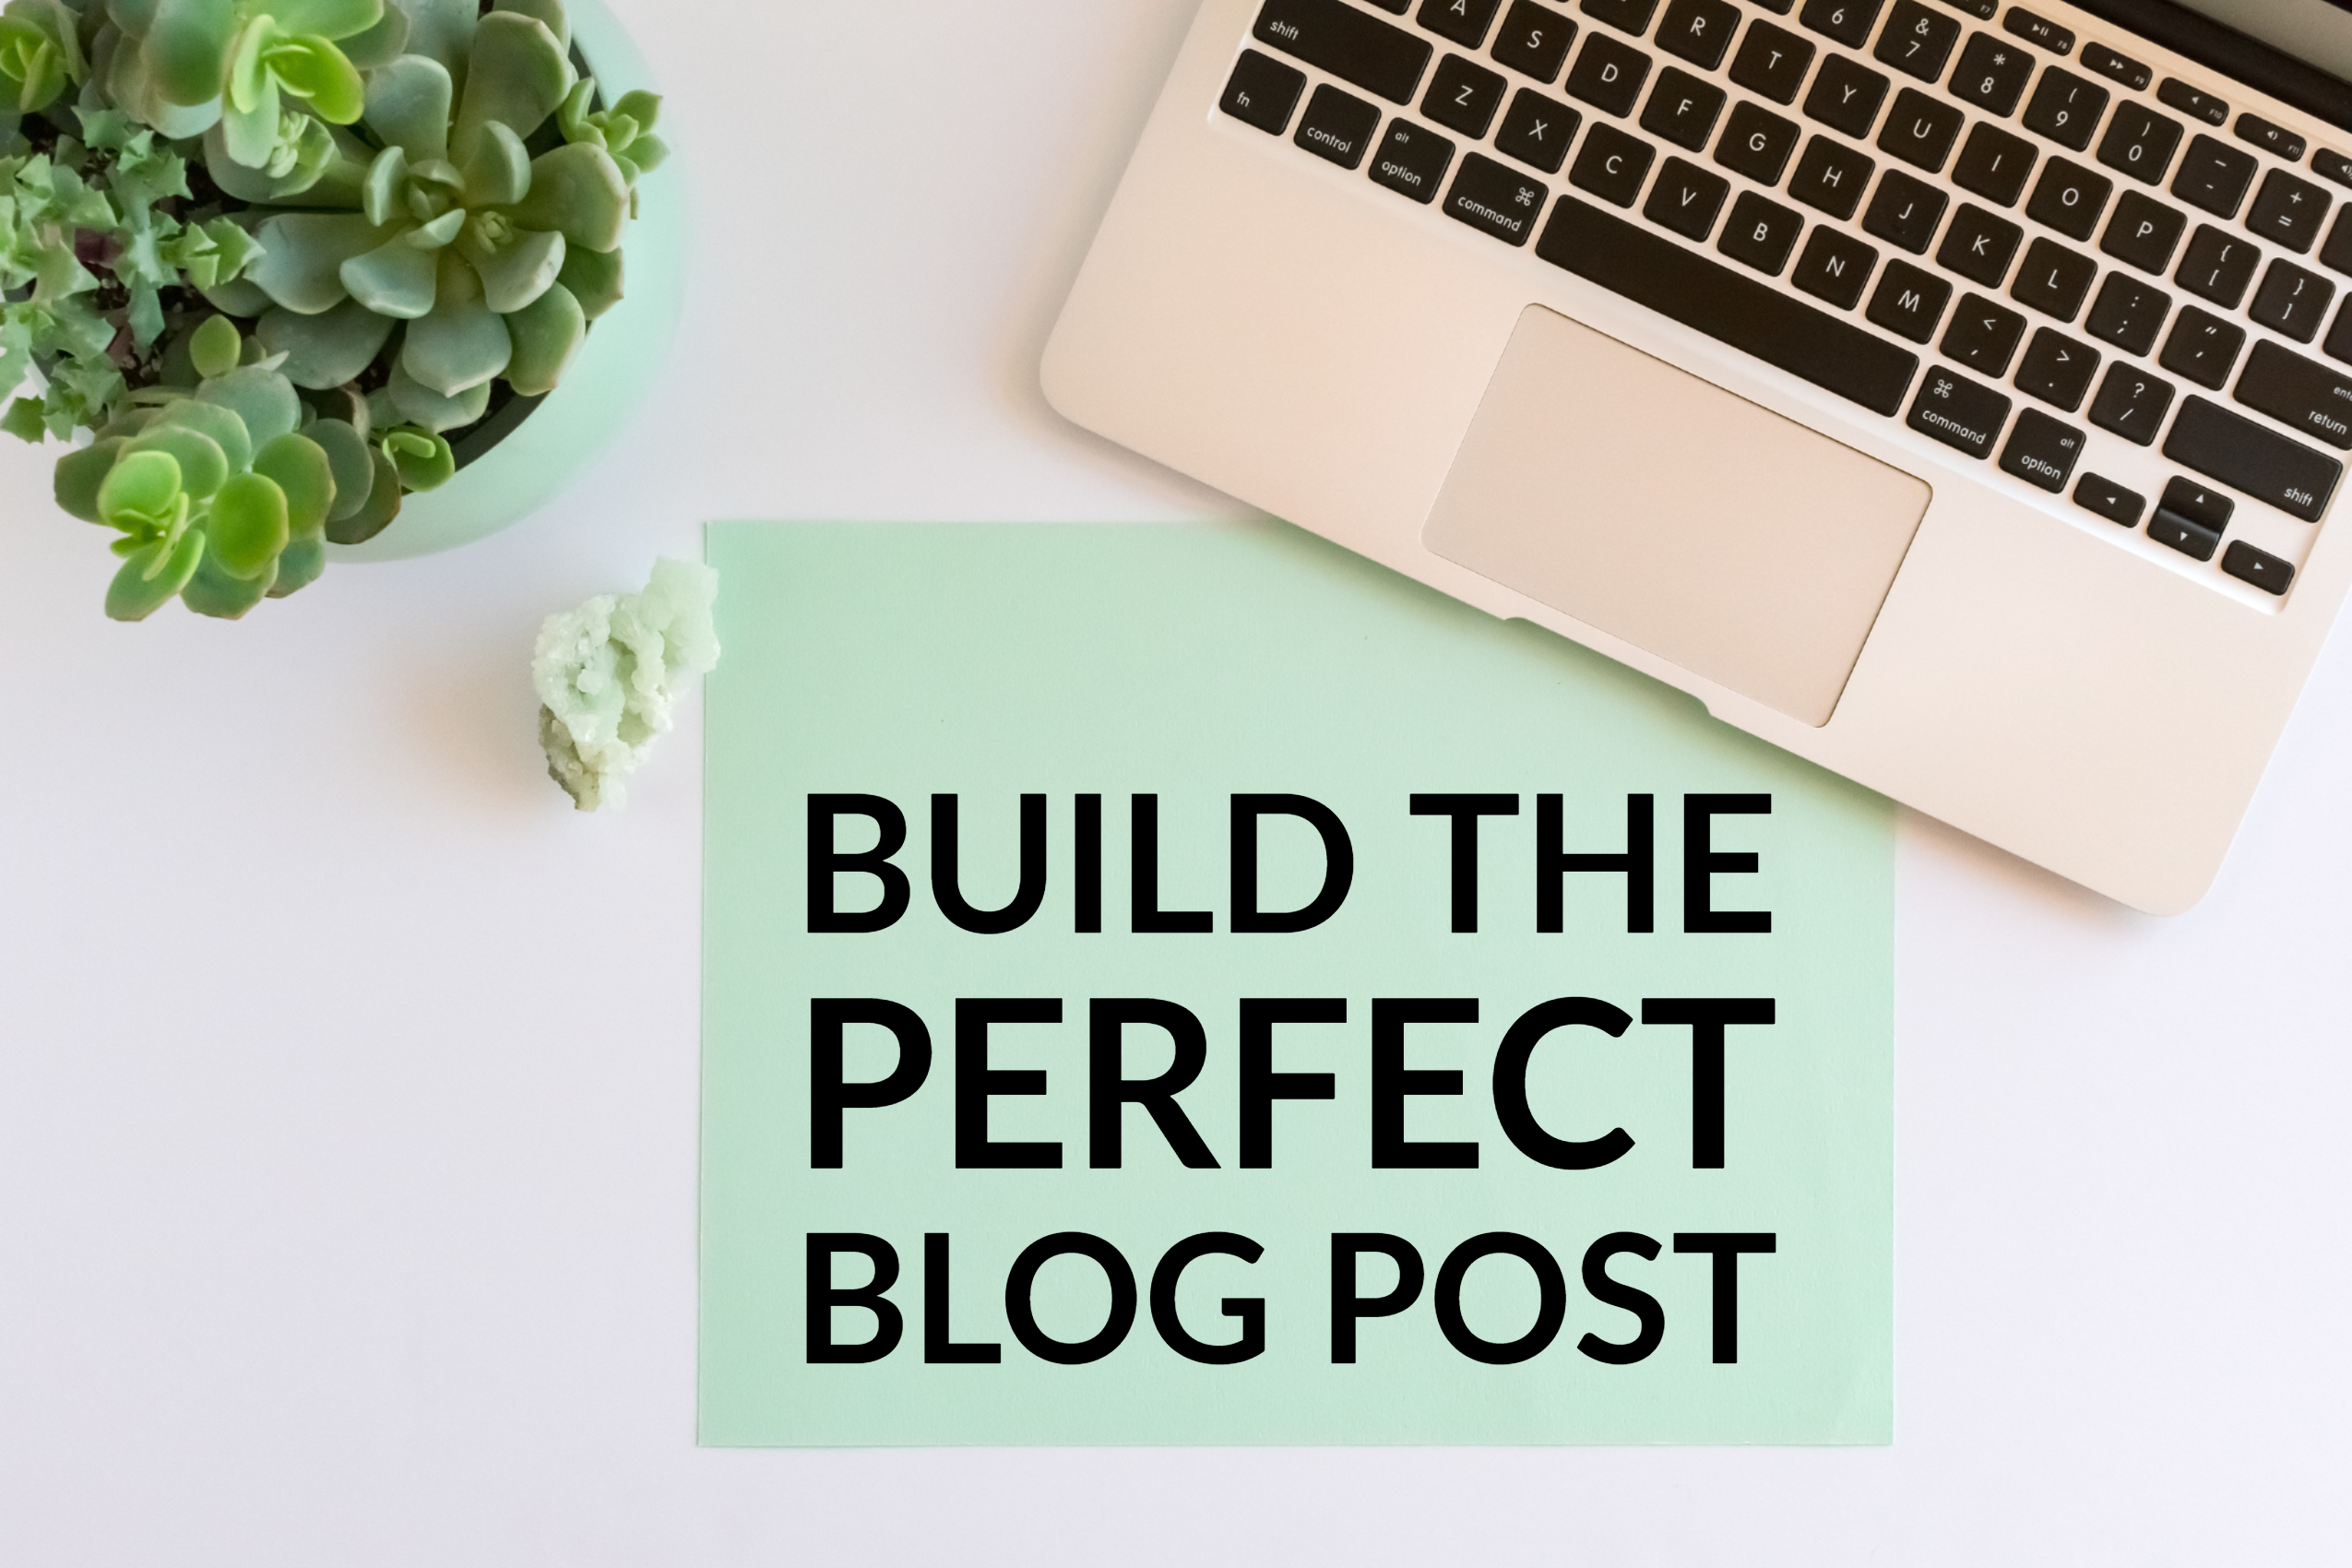 Build The Perfect Blog Post